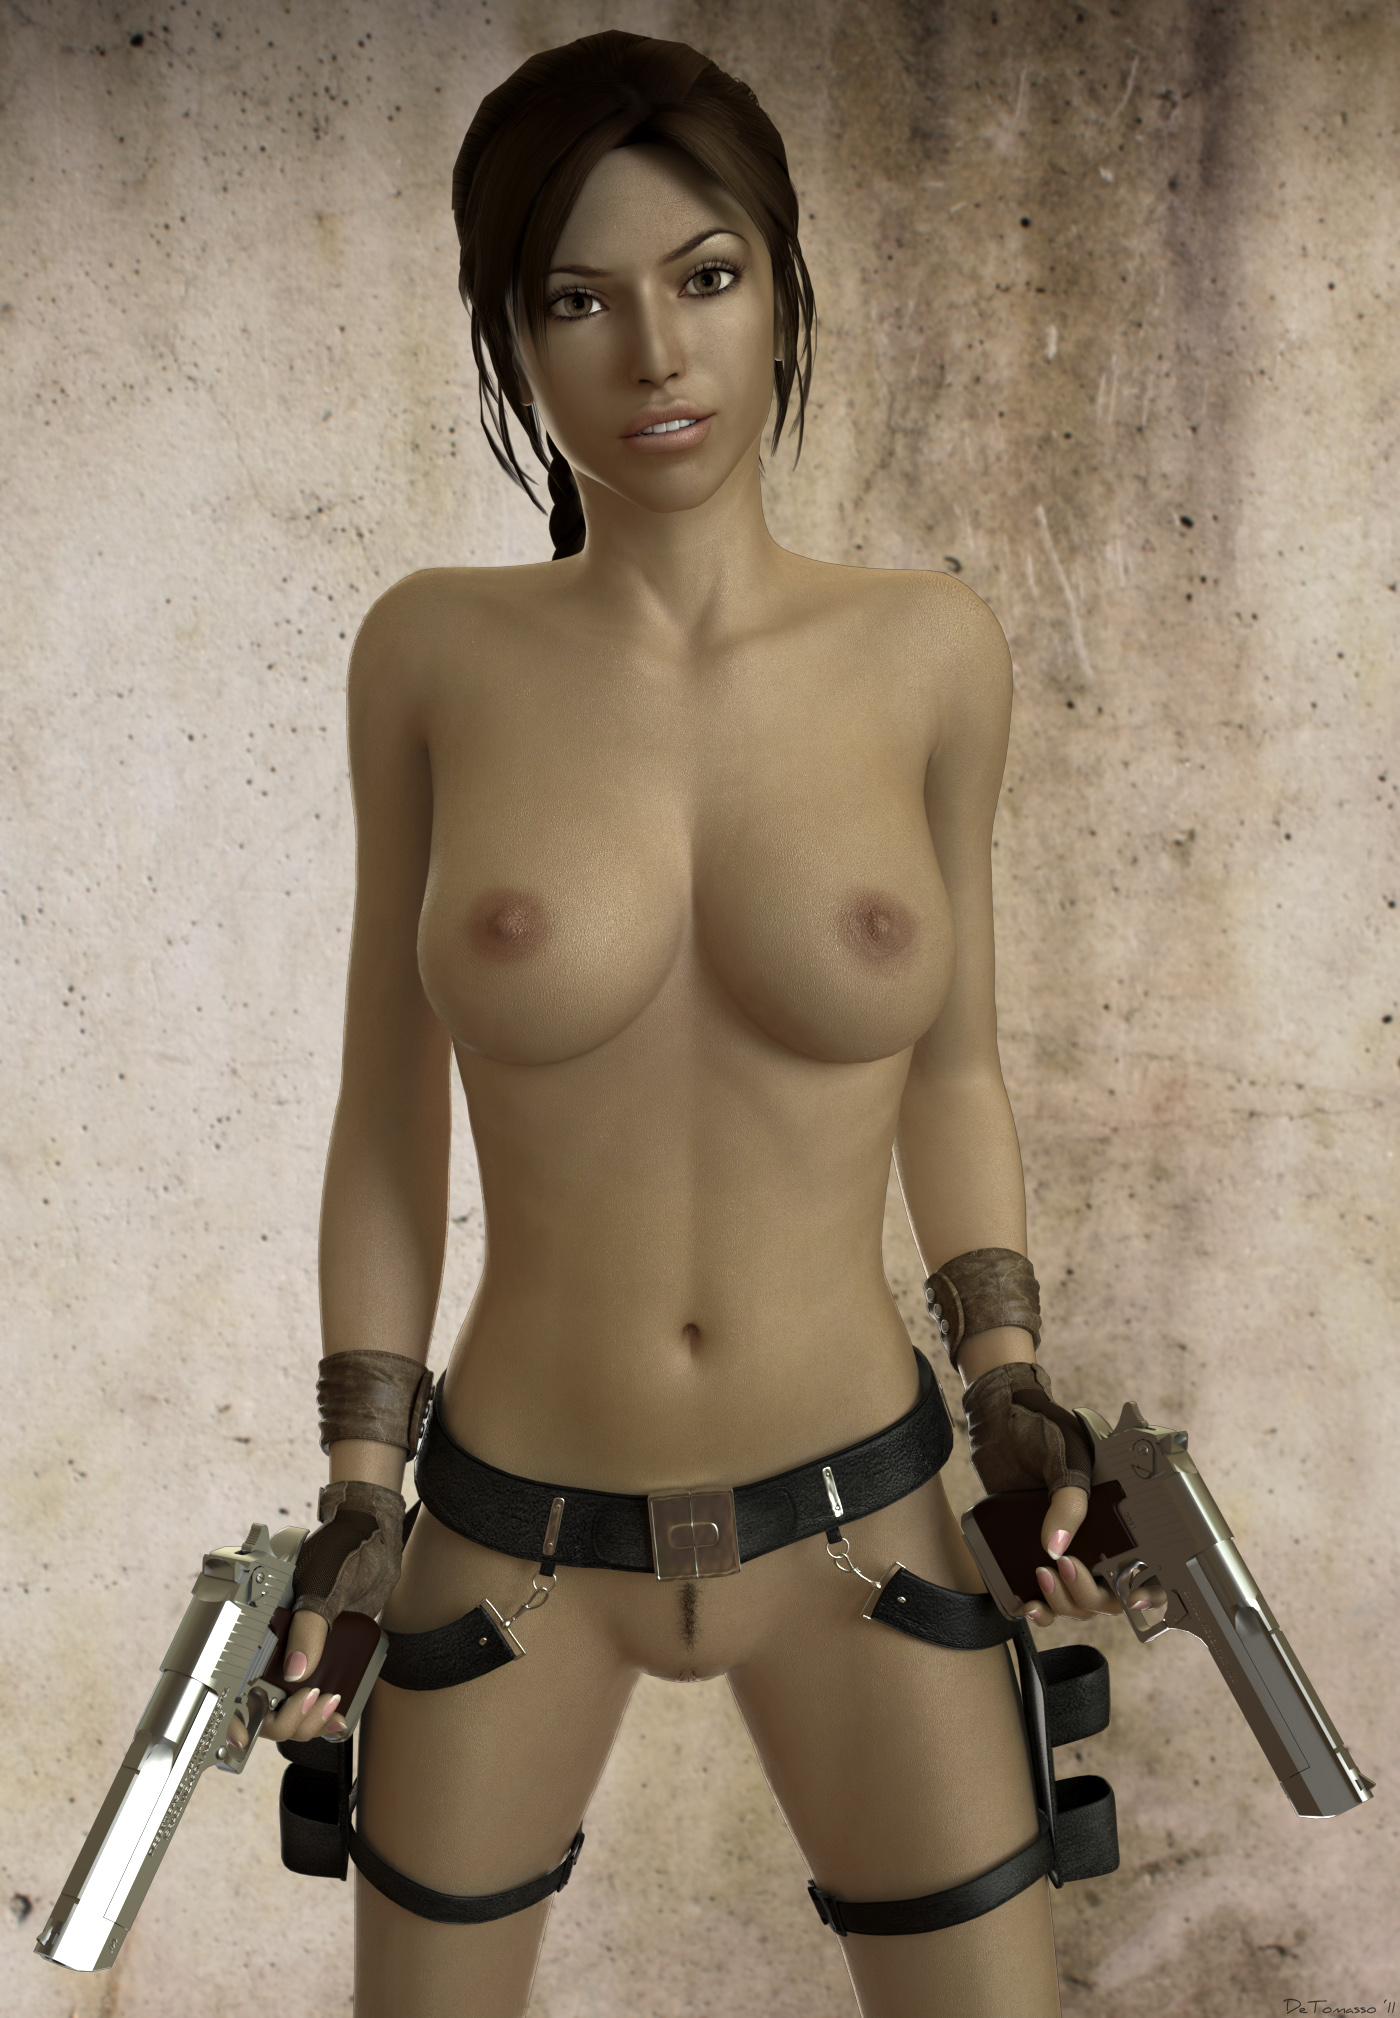 Lara croft epic hot pics xxx clips